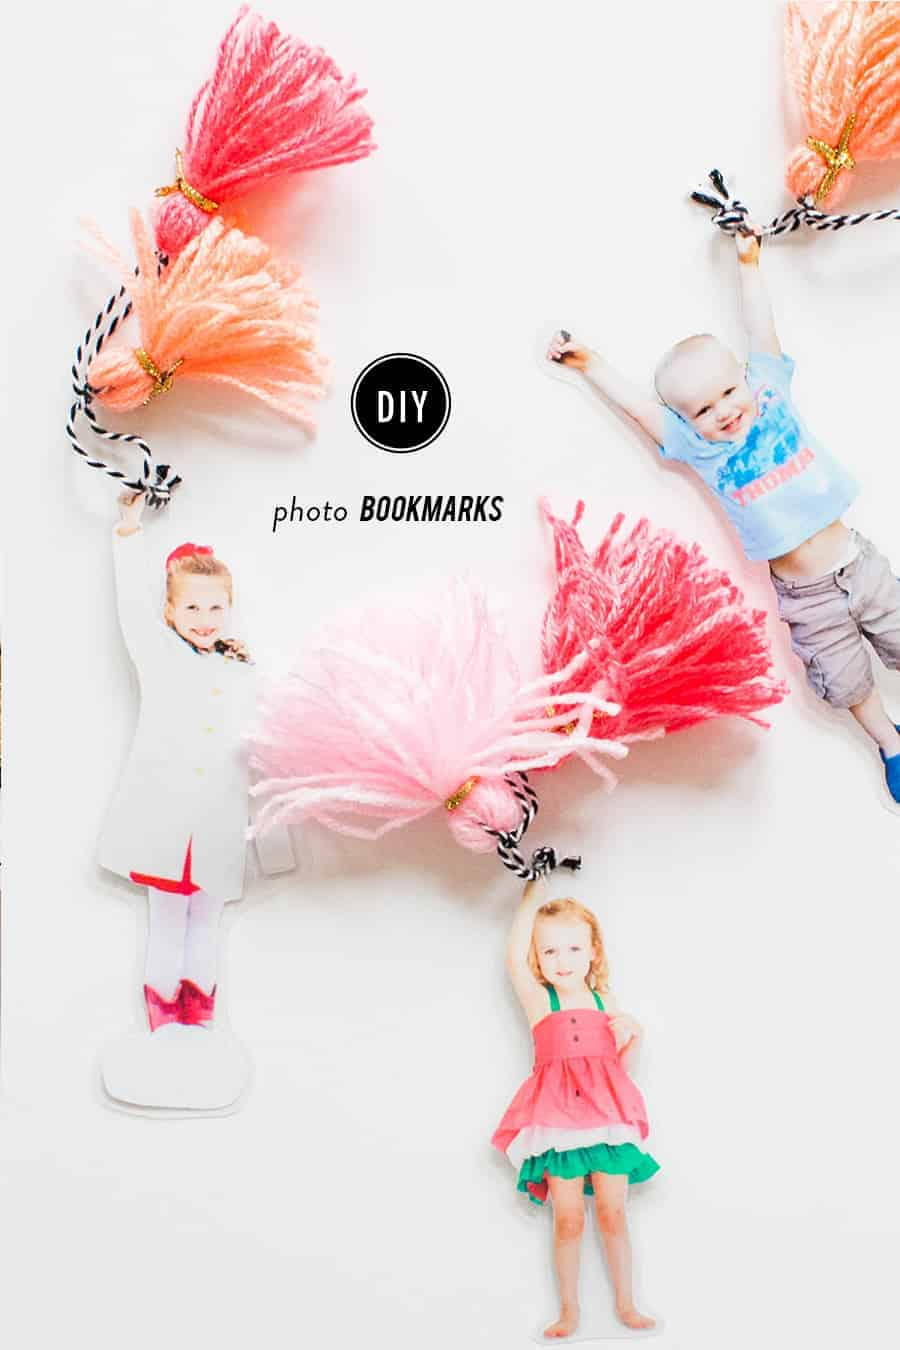 DIY Photo Bookmarks by Style Me Pretty | Fabulous Mother's Day Gift Ideas